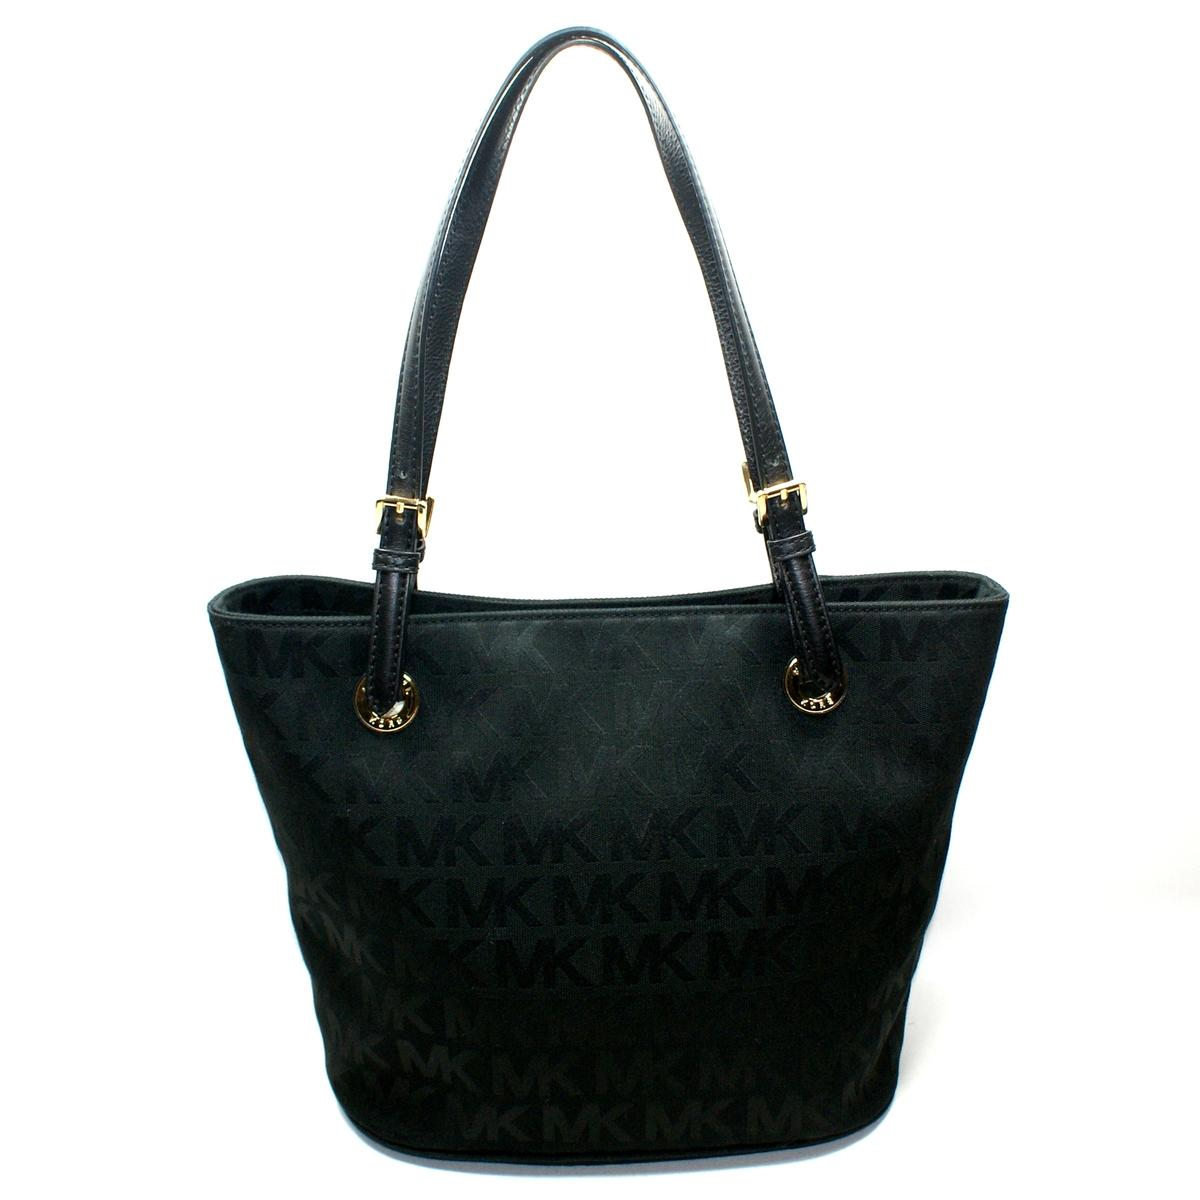 Michael Kors Black Jet Set Travel Medium Saffiano Leather Top-Zip Tote 30T5STVT2L Jet setters, take note: this sophisticated, multi-tasking tote is the ultimate travel accomplice. Crafted from Saffiano leather, it evokes a chic, away-we-go attitude.